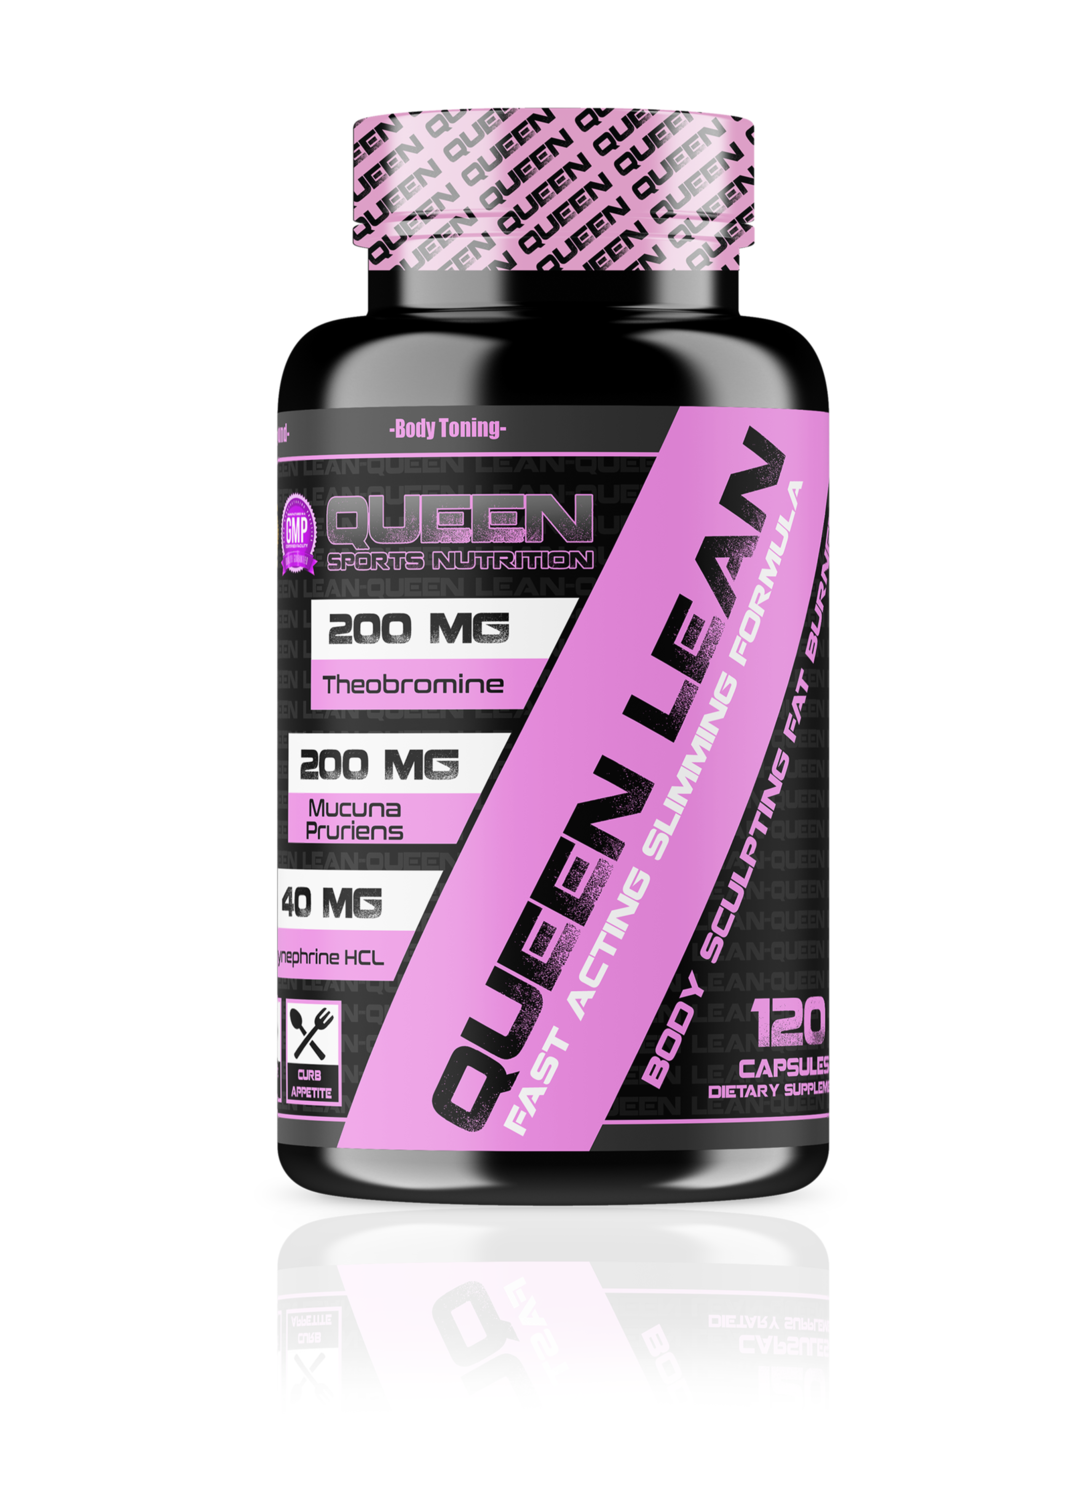 King Sports Nutrition Queen Lean